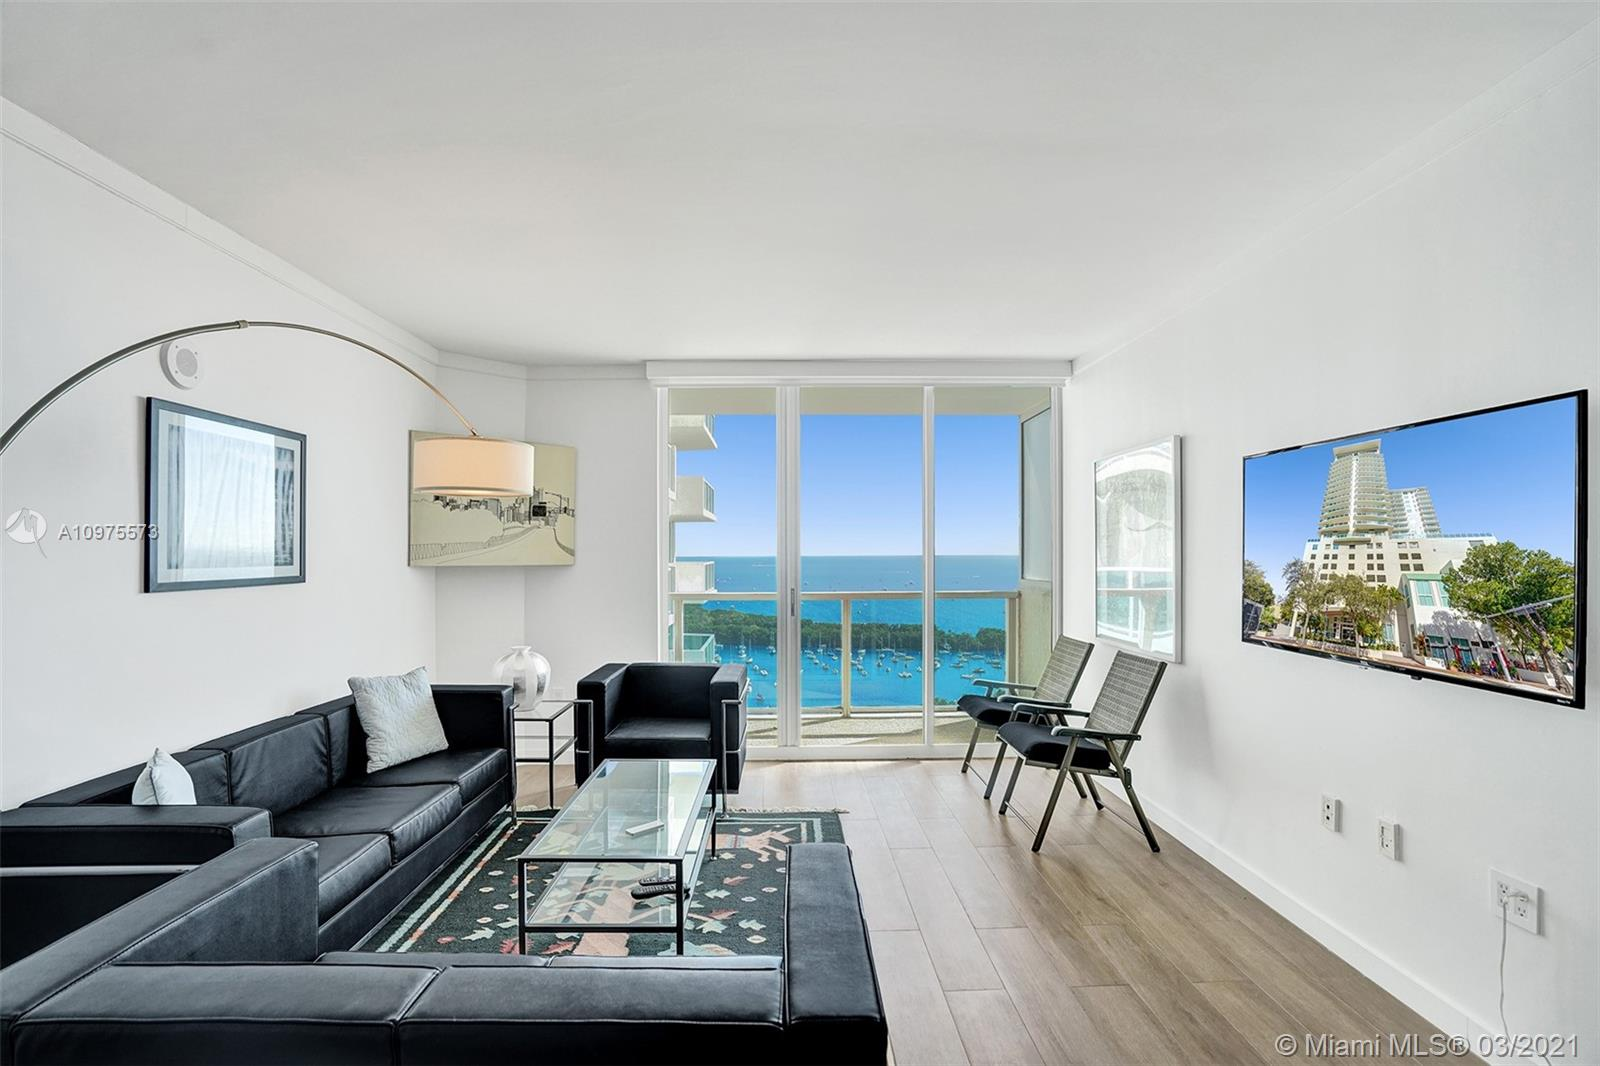 Stunning and renovated 1/1.5 with modern contemporary high-end finishes and top of the line European kitchen appliances. Located in the Hotel Arya with high floor bay views from every room. Conveniently located in charming Coconut Grove within walking distance to top-rated restaurants, cafes, chic boutique shops, and much more. Enjoy luxurious amenities and services of the Hotel Arya while living in your private residence. Amenities include a heated pool with spa, fully-equipped fitness center, squash courts, front desk with concierge service, and valet parking. Benefit from a flexible rental policy. Great for full or part time use or corporate rentals. Pet friendly.